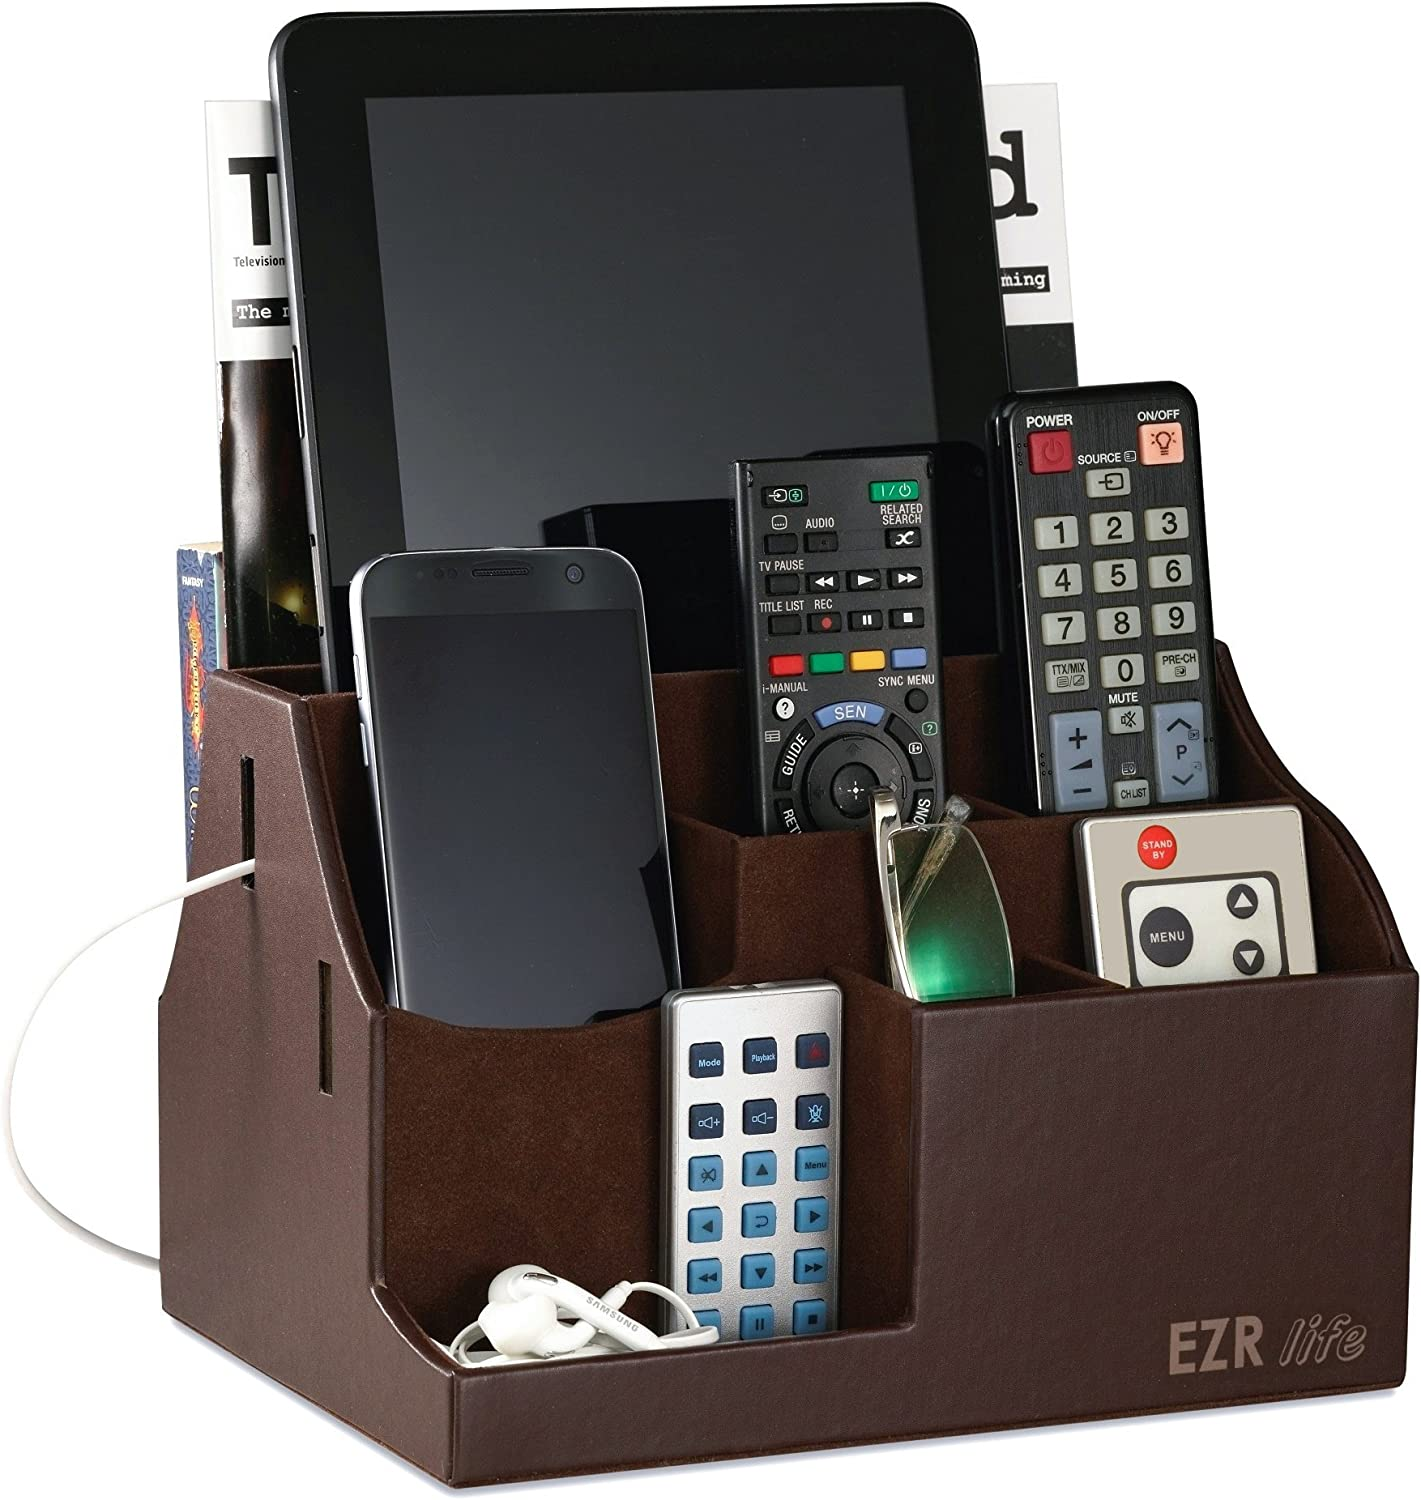 EZR life All-in-One Remote Control Holder, Caddy, Organizer - Brown Leather - also holds Phones, Tablets, Books, E-books, Glasses